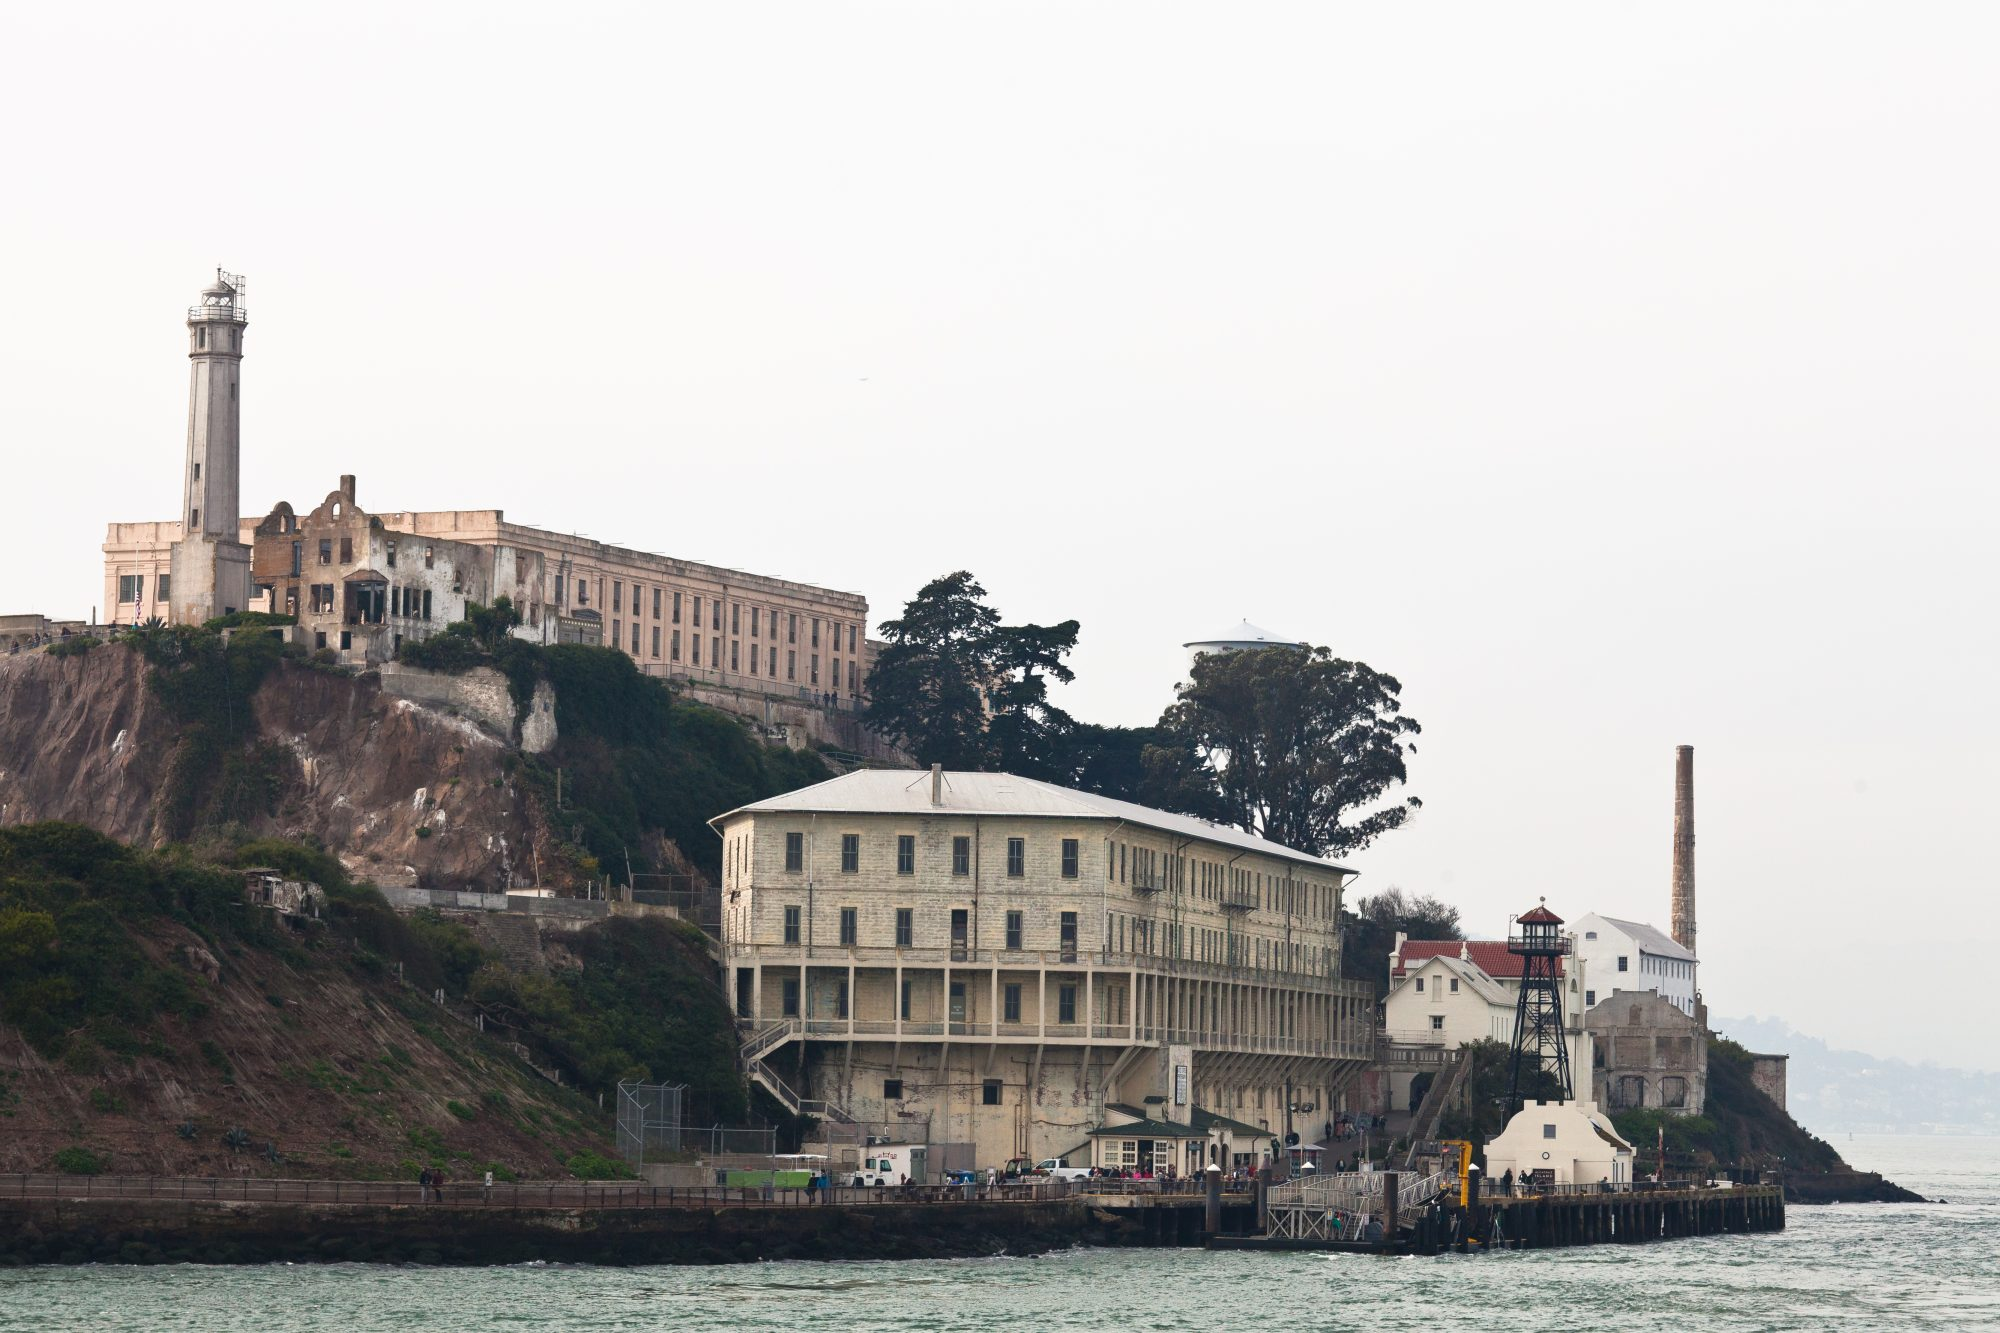 A ticket for the Alcatraz tour will get you ferried over to Alcatraz island for a 2-hour tour of the prison. - www.theballeronabudget.com